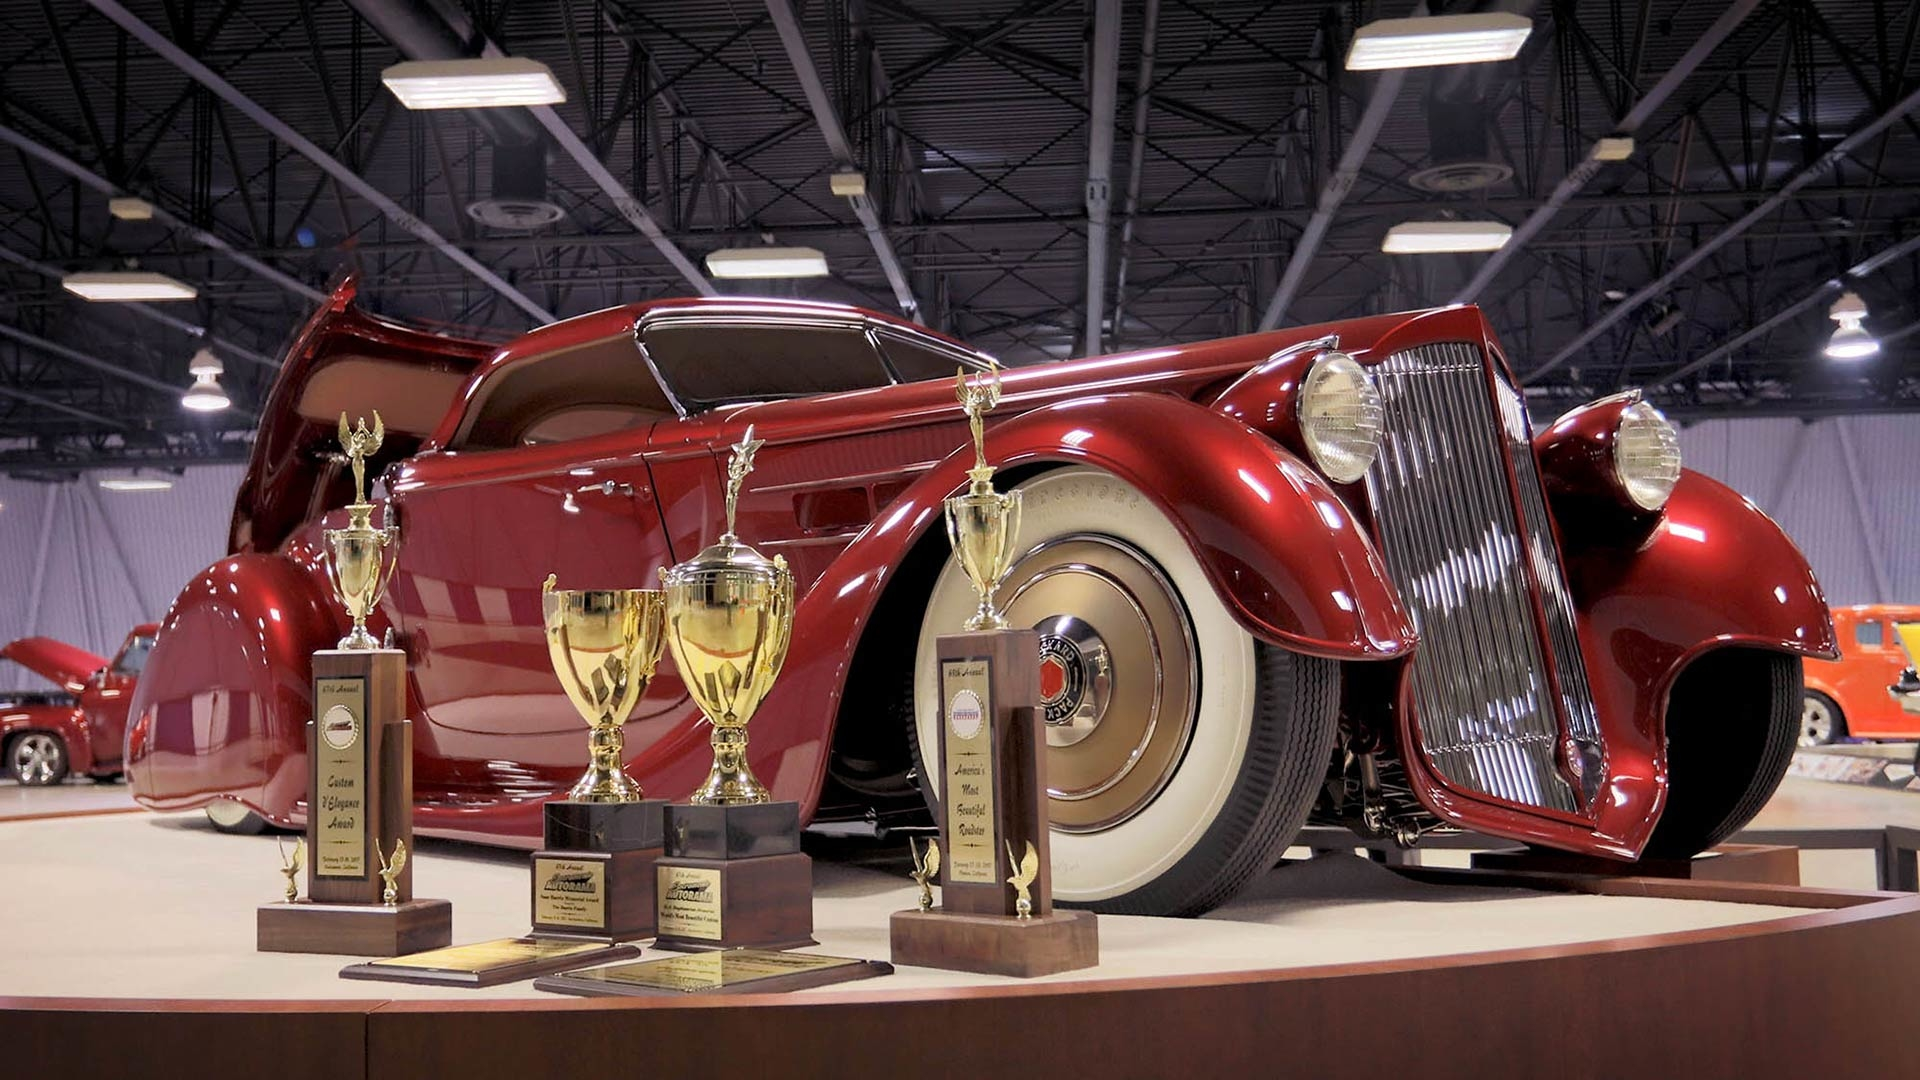 Hot rods and dragsters ready for world's biggest indoor car show this weekend